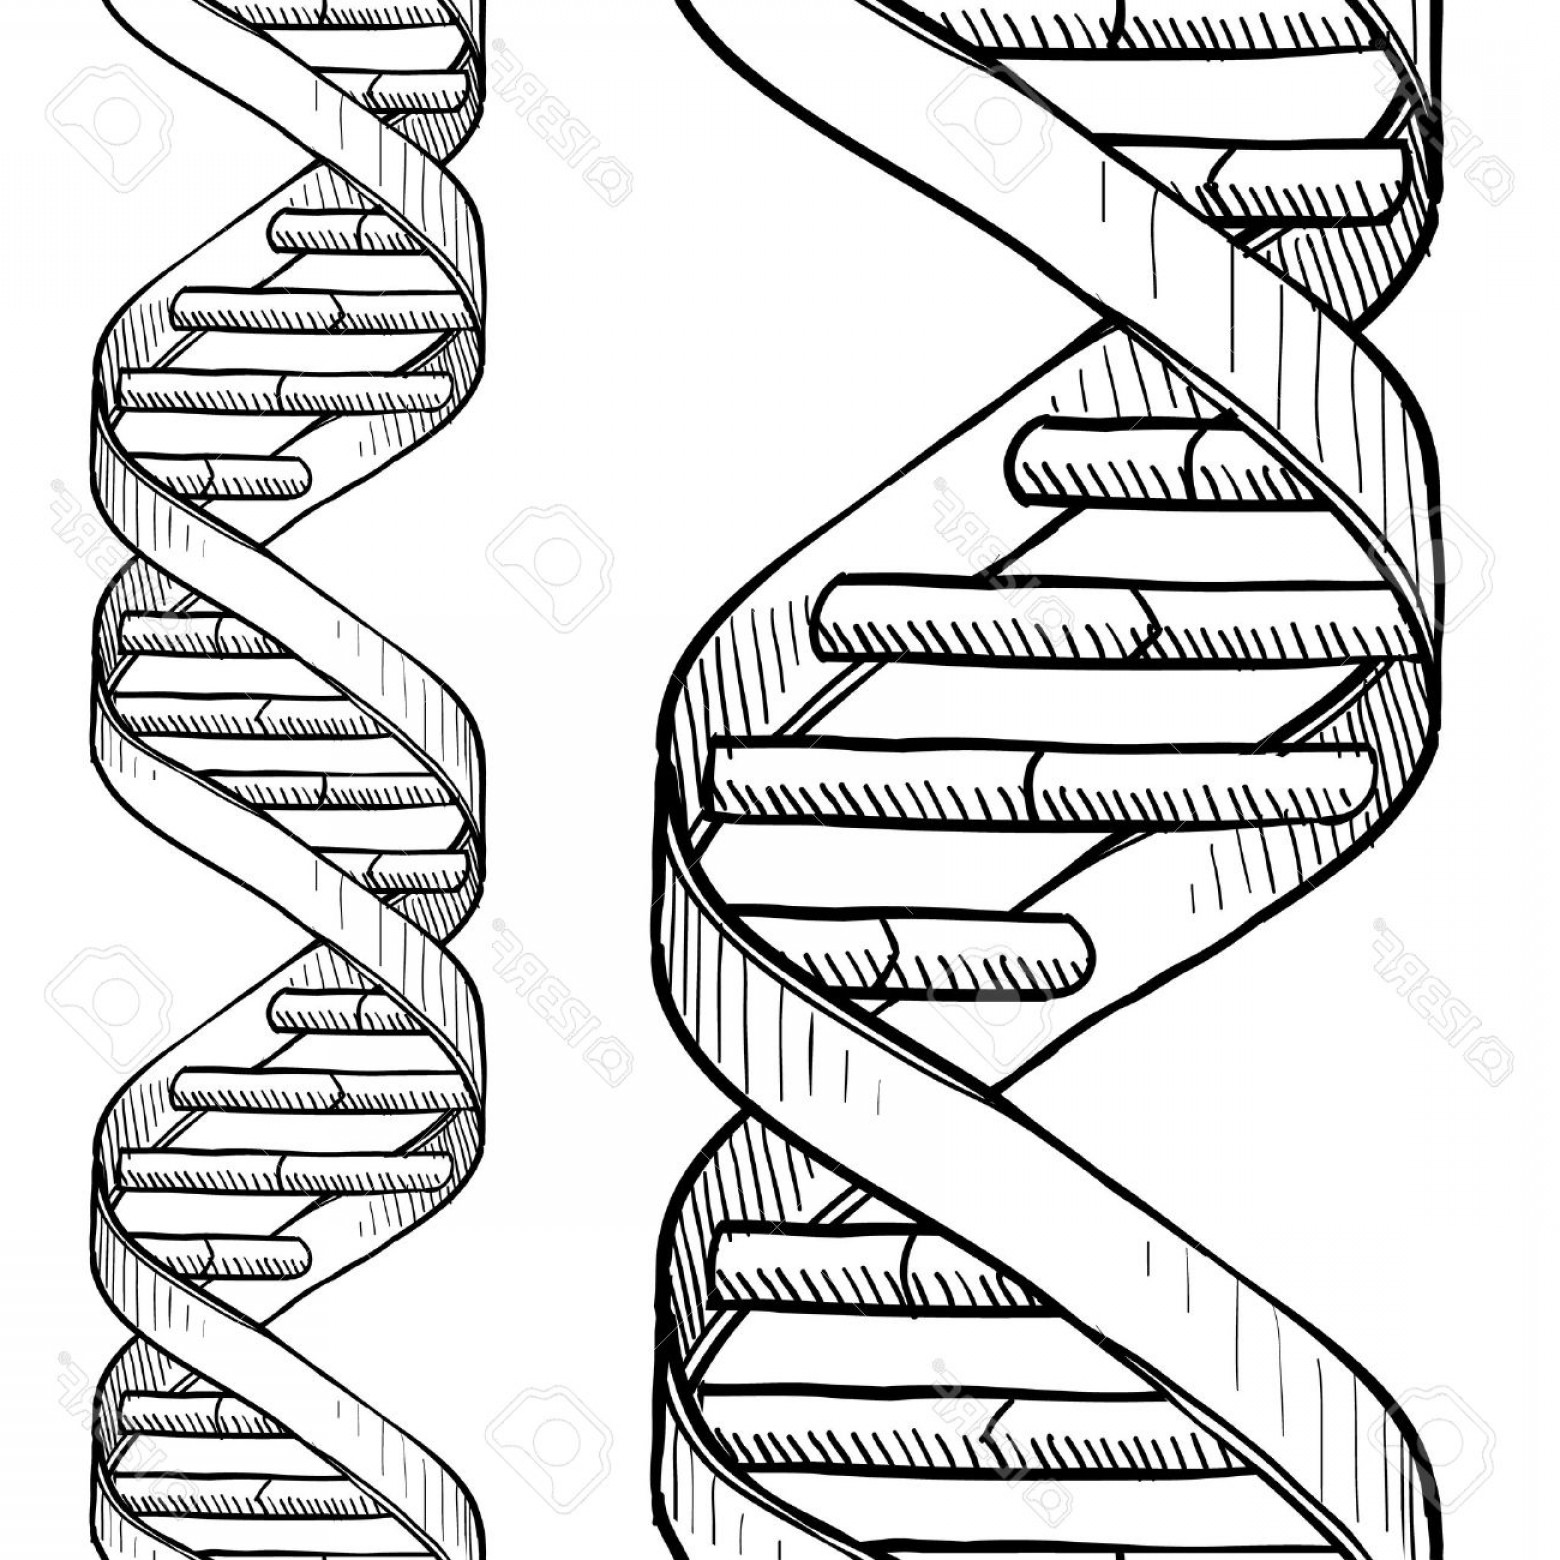 DNA Helix Vector: Photodoodle Style Dna Double Helix Seamless Vector Background Or Border